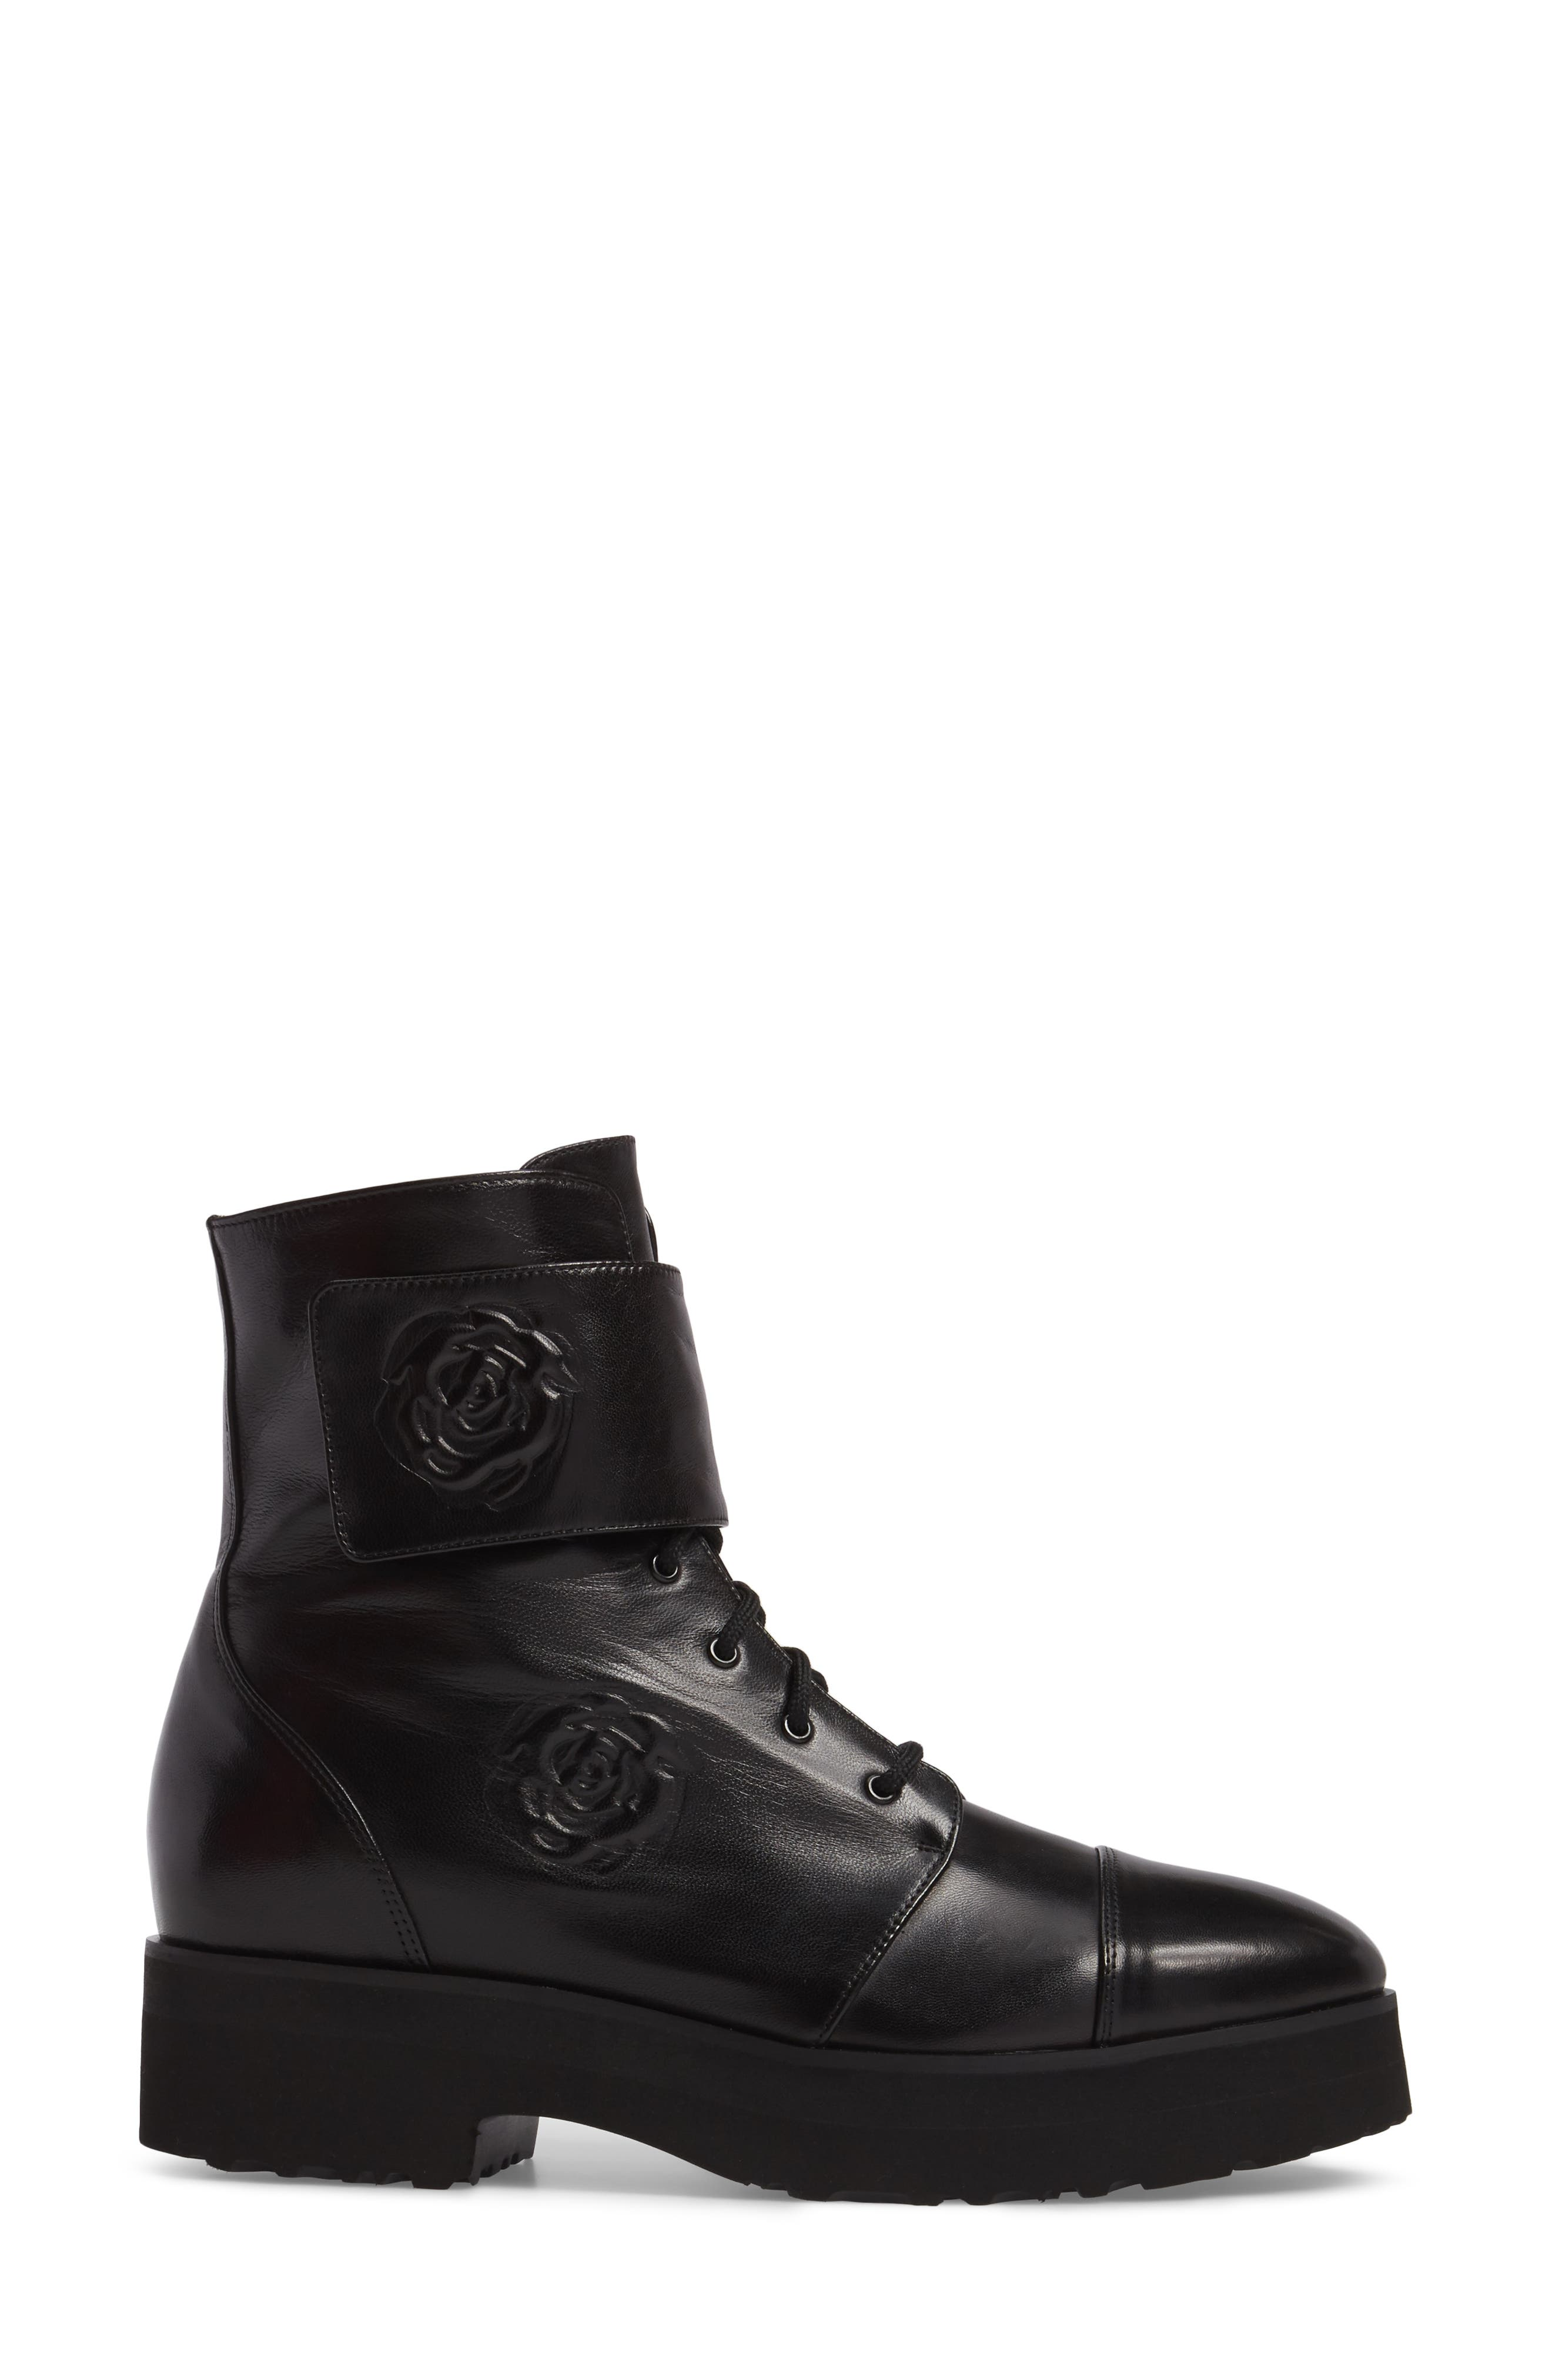 Valentina Rose Boot,                             Alternate thumbnail 3, color,                             Black Leather